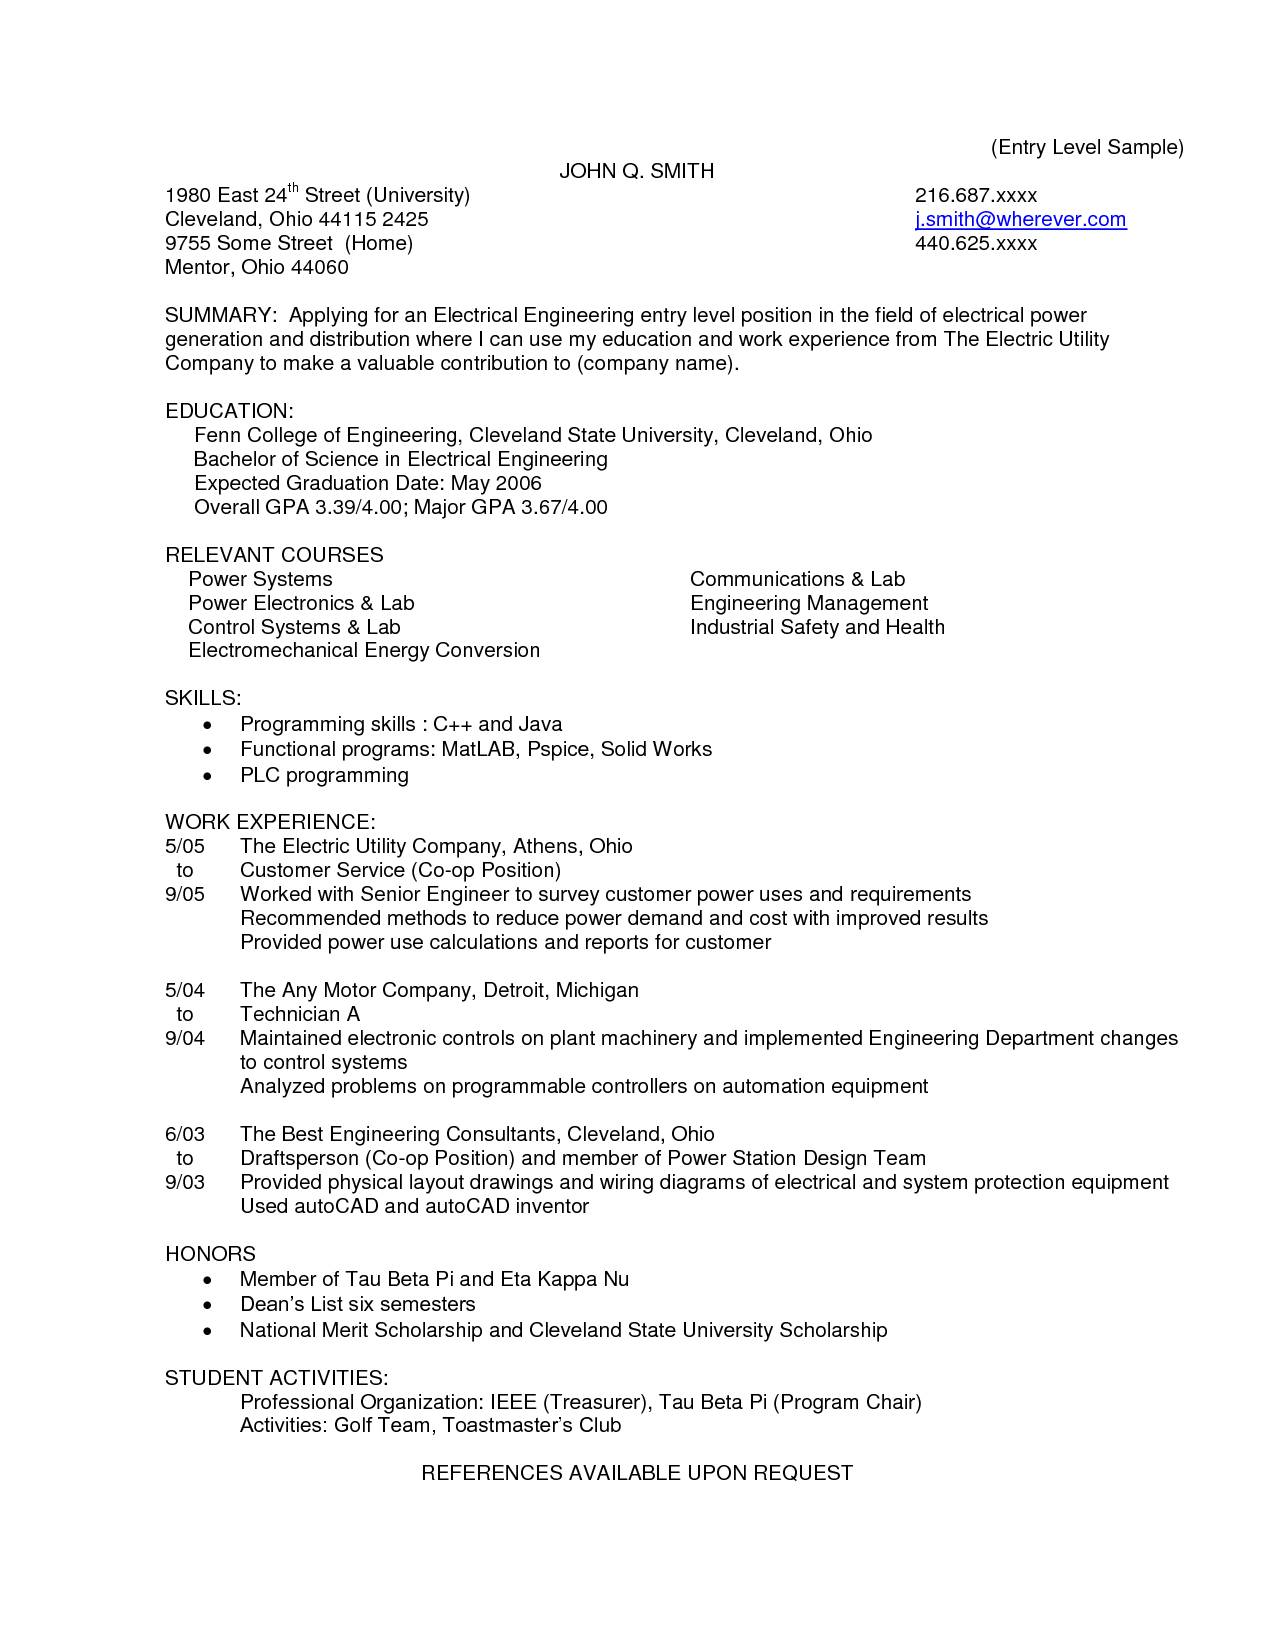 006 Essay Example Mechanical Engineering Scholarship Date Entry Level Resume Writing Service Exclusive Ideas Puter Engineer Cover Letter Mining Embedded